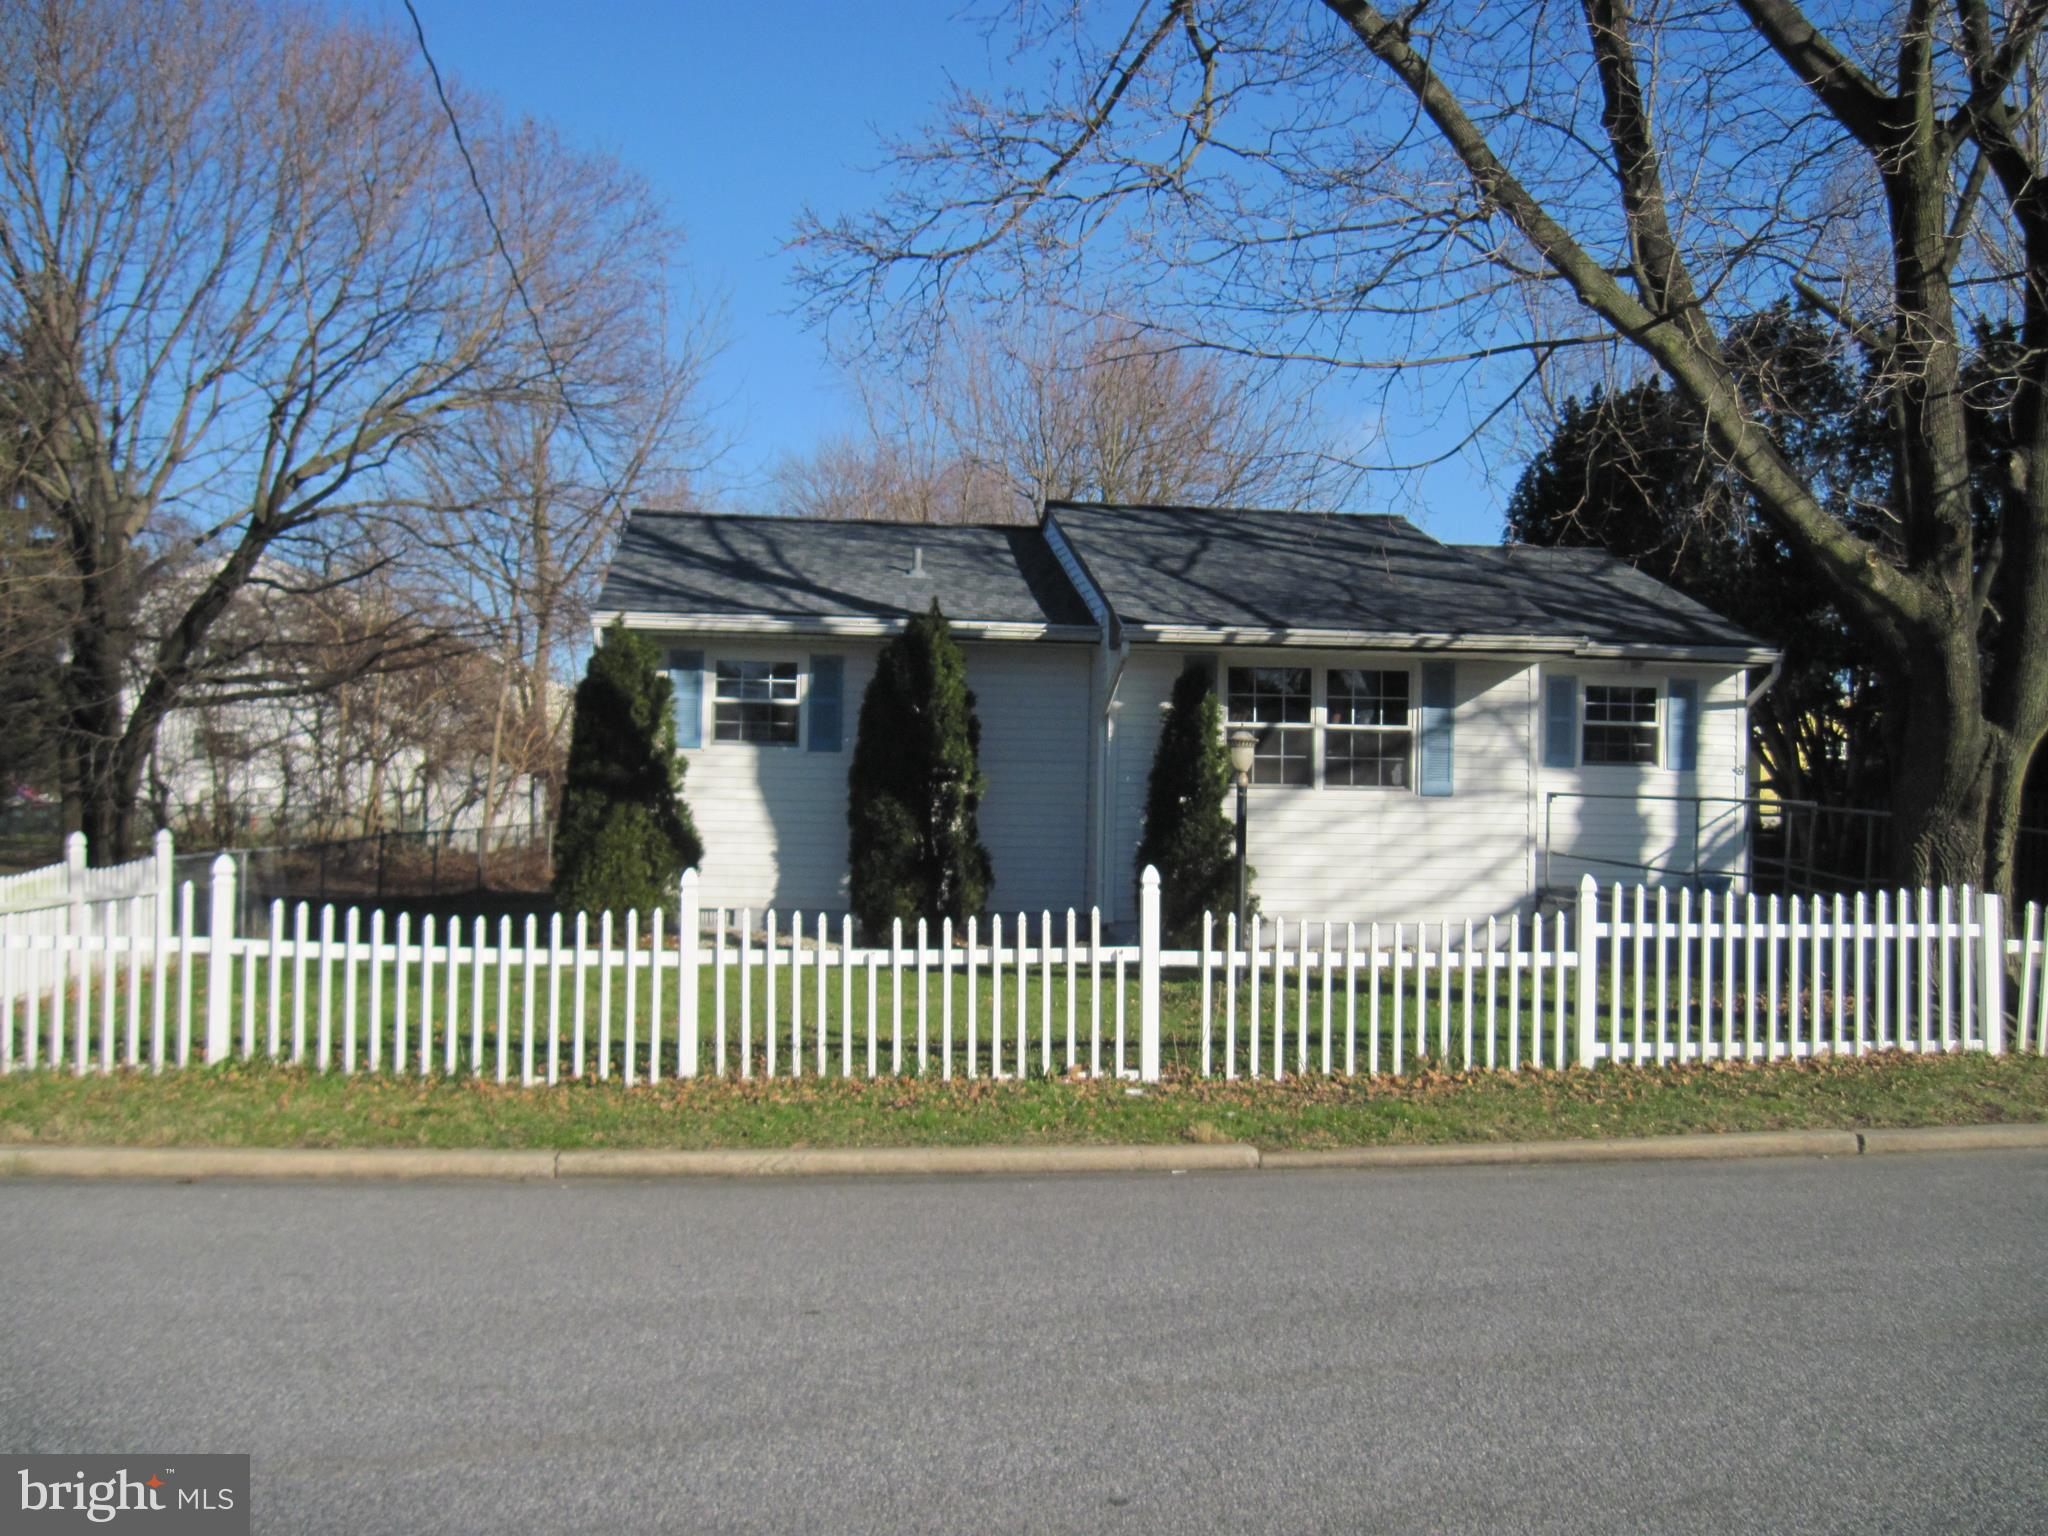 Cute ranch in Middletown, minutes from RT 1 and plenty of restaurants and shops to keep you busy.  Easy access also to 301 to Maryland.  Home was updated in 2015 and 2017 which included the roof, windows, most of plumbing, electric, waterproofed crawlspace and more.  Stop by and see for yourself, this home is ready to move in.